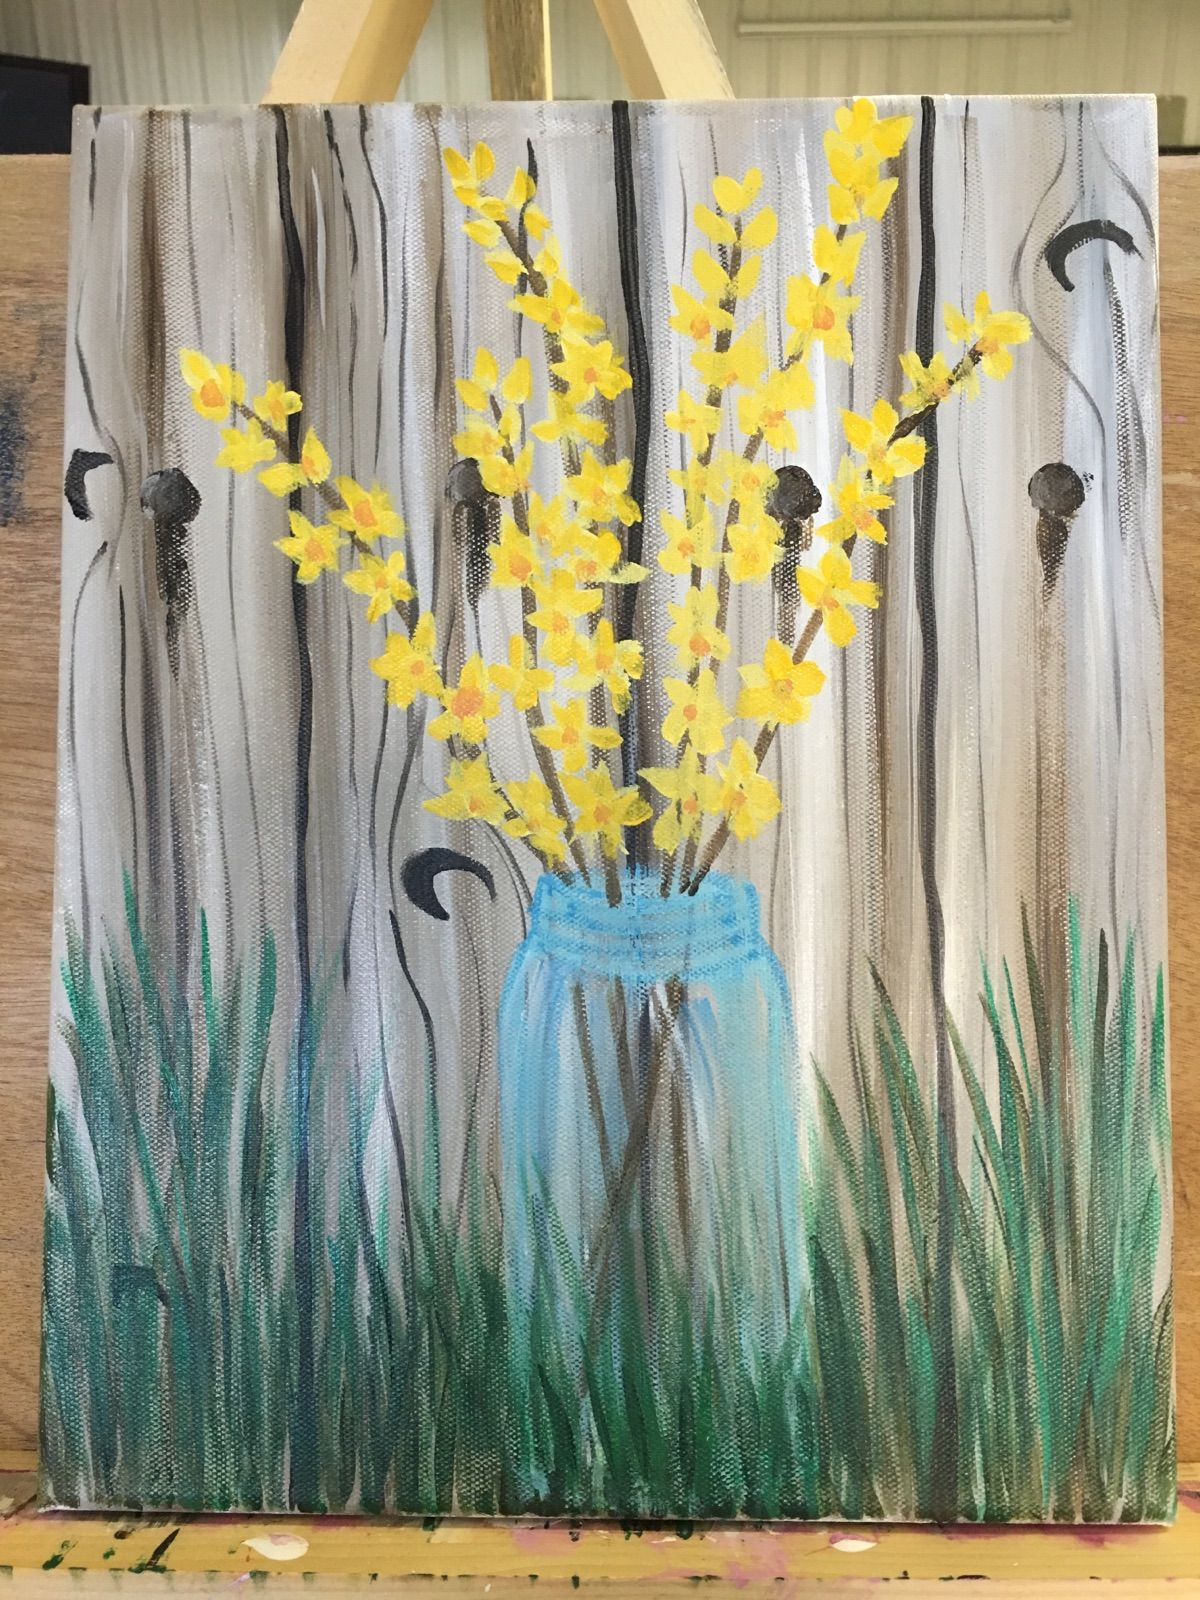 50+ Easy Canvas Painting Ideas for Beginner [Images]